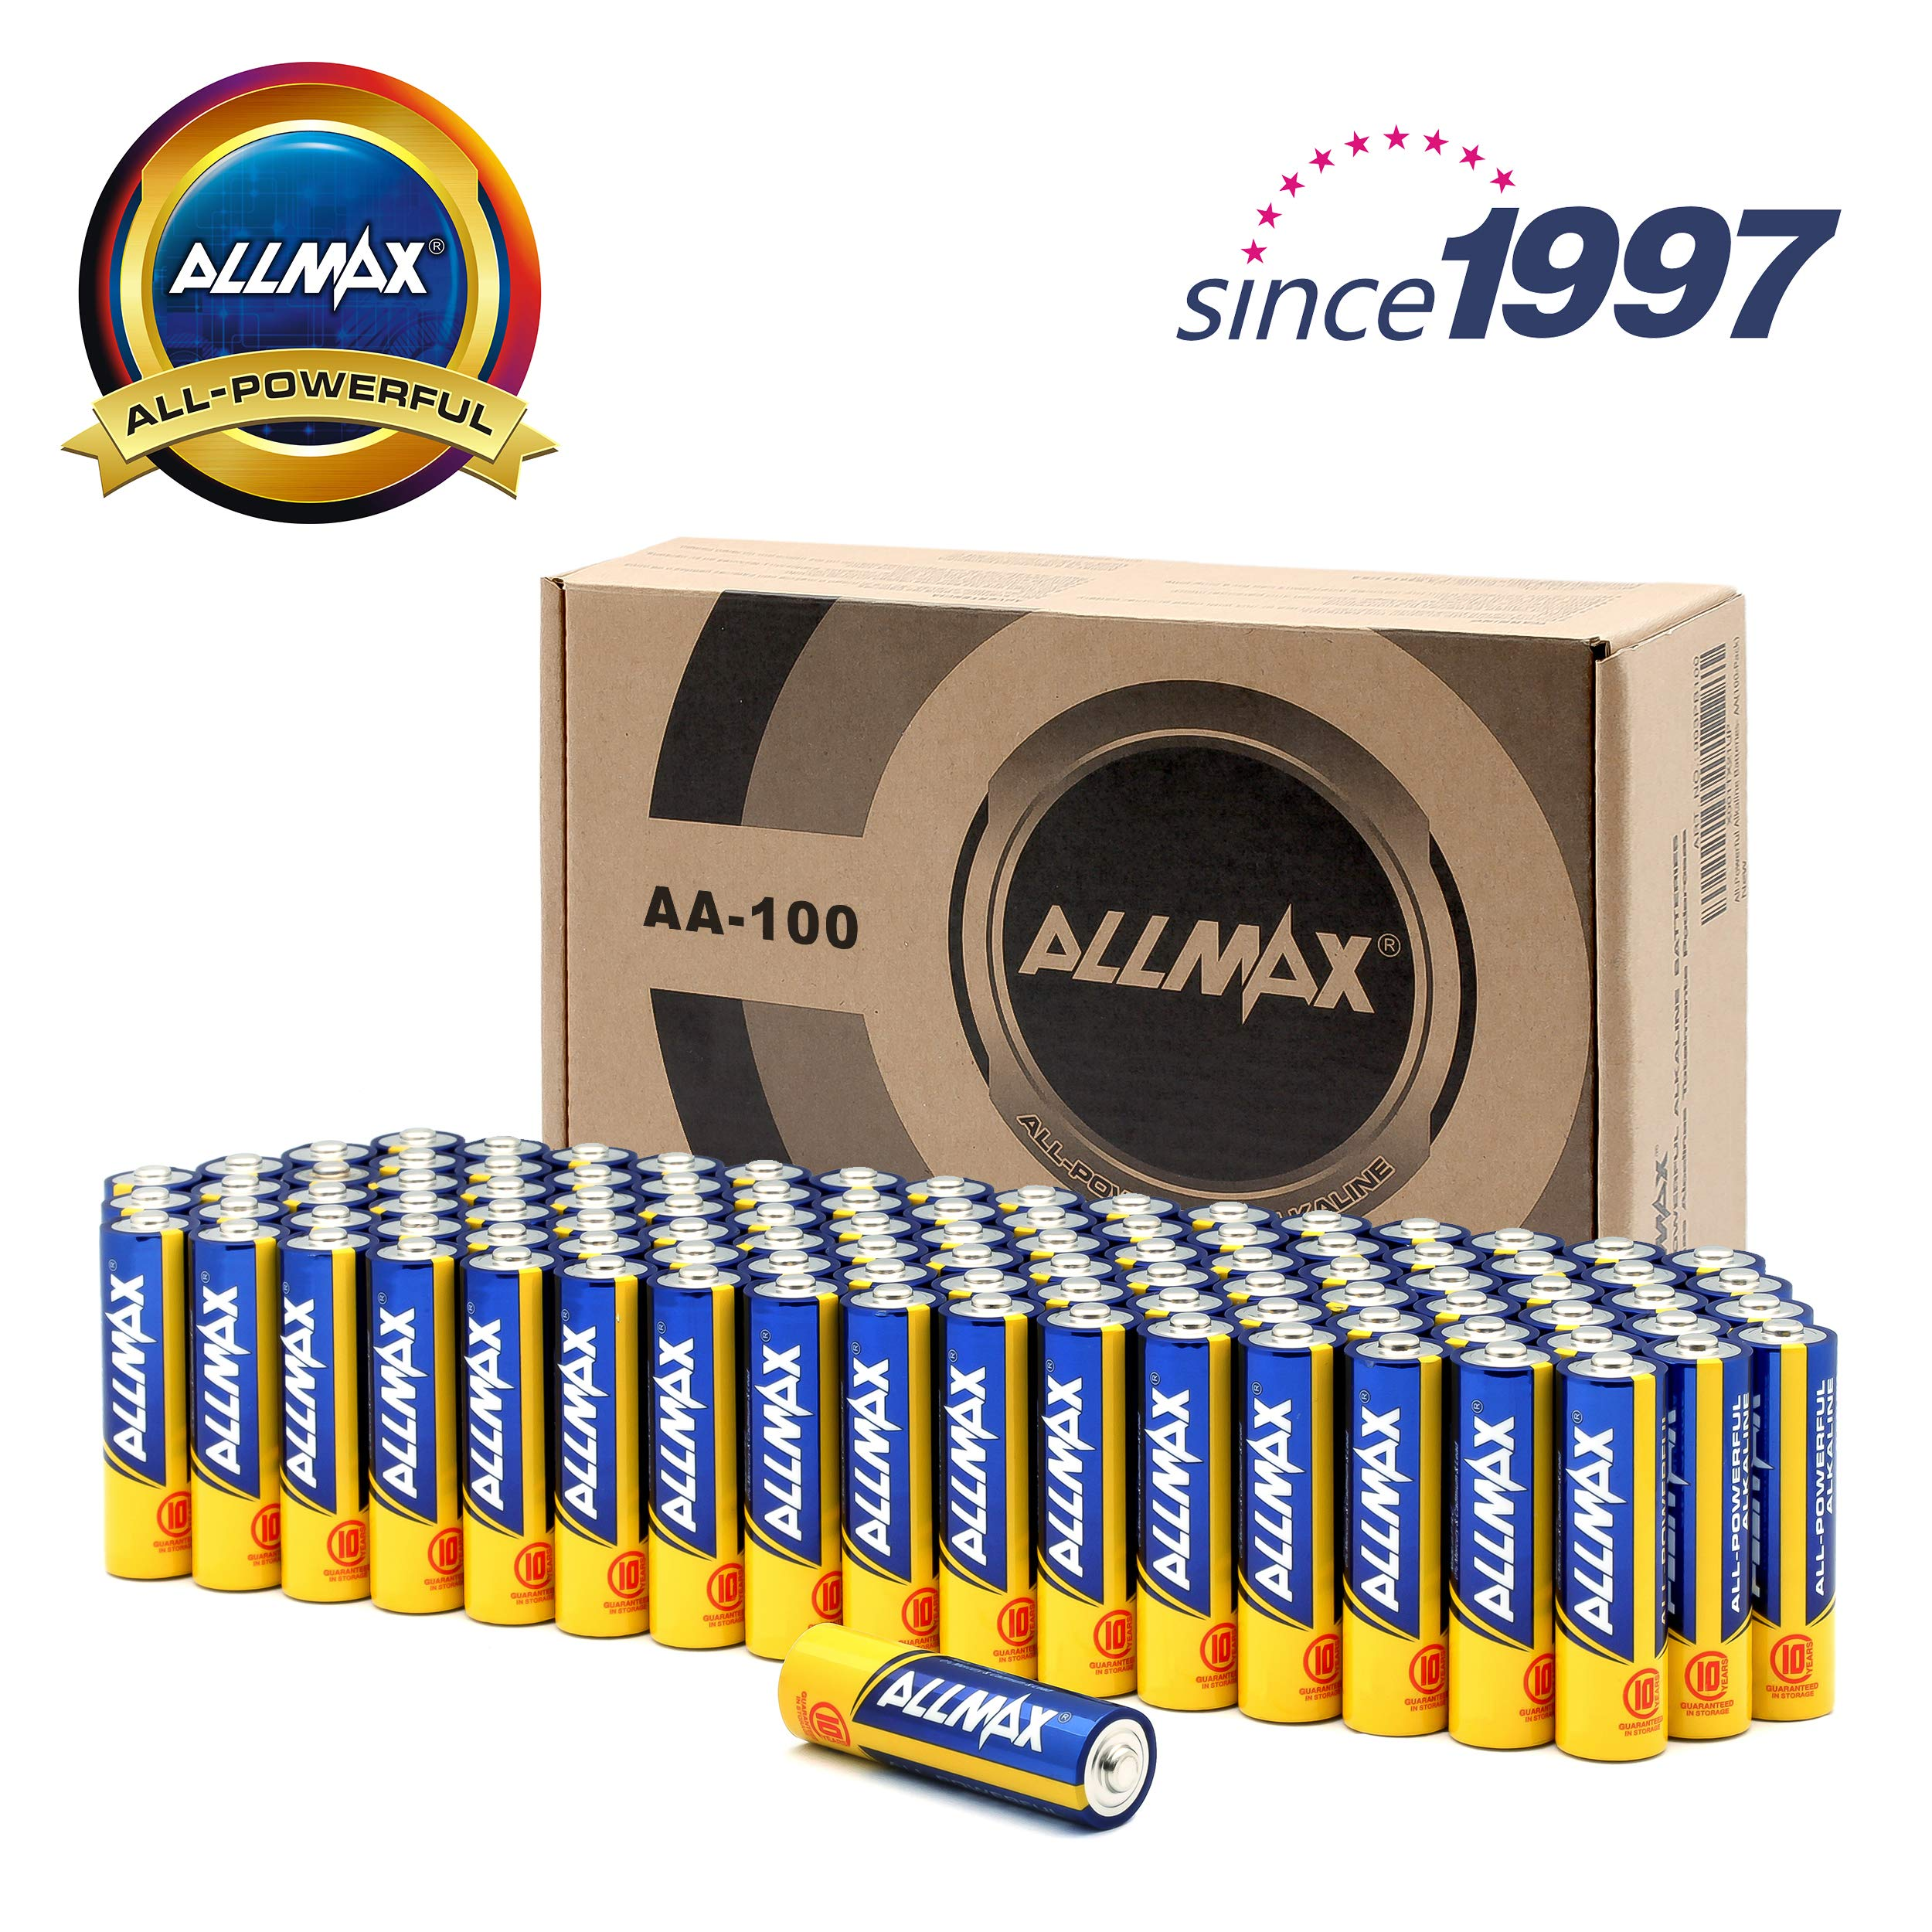 ALLMAX All-Powerful Alkaline Batteries - AA (100-Pack) - Ultra Long Lasting and Leak-Proof, All-Purpose for Household and Business by ALLMAX (Image #6)